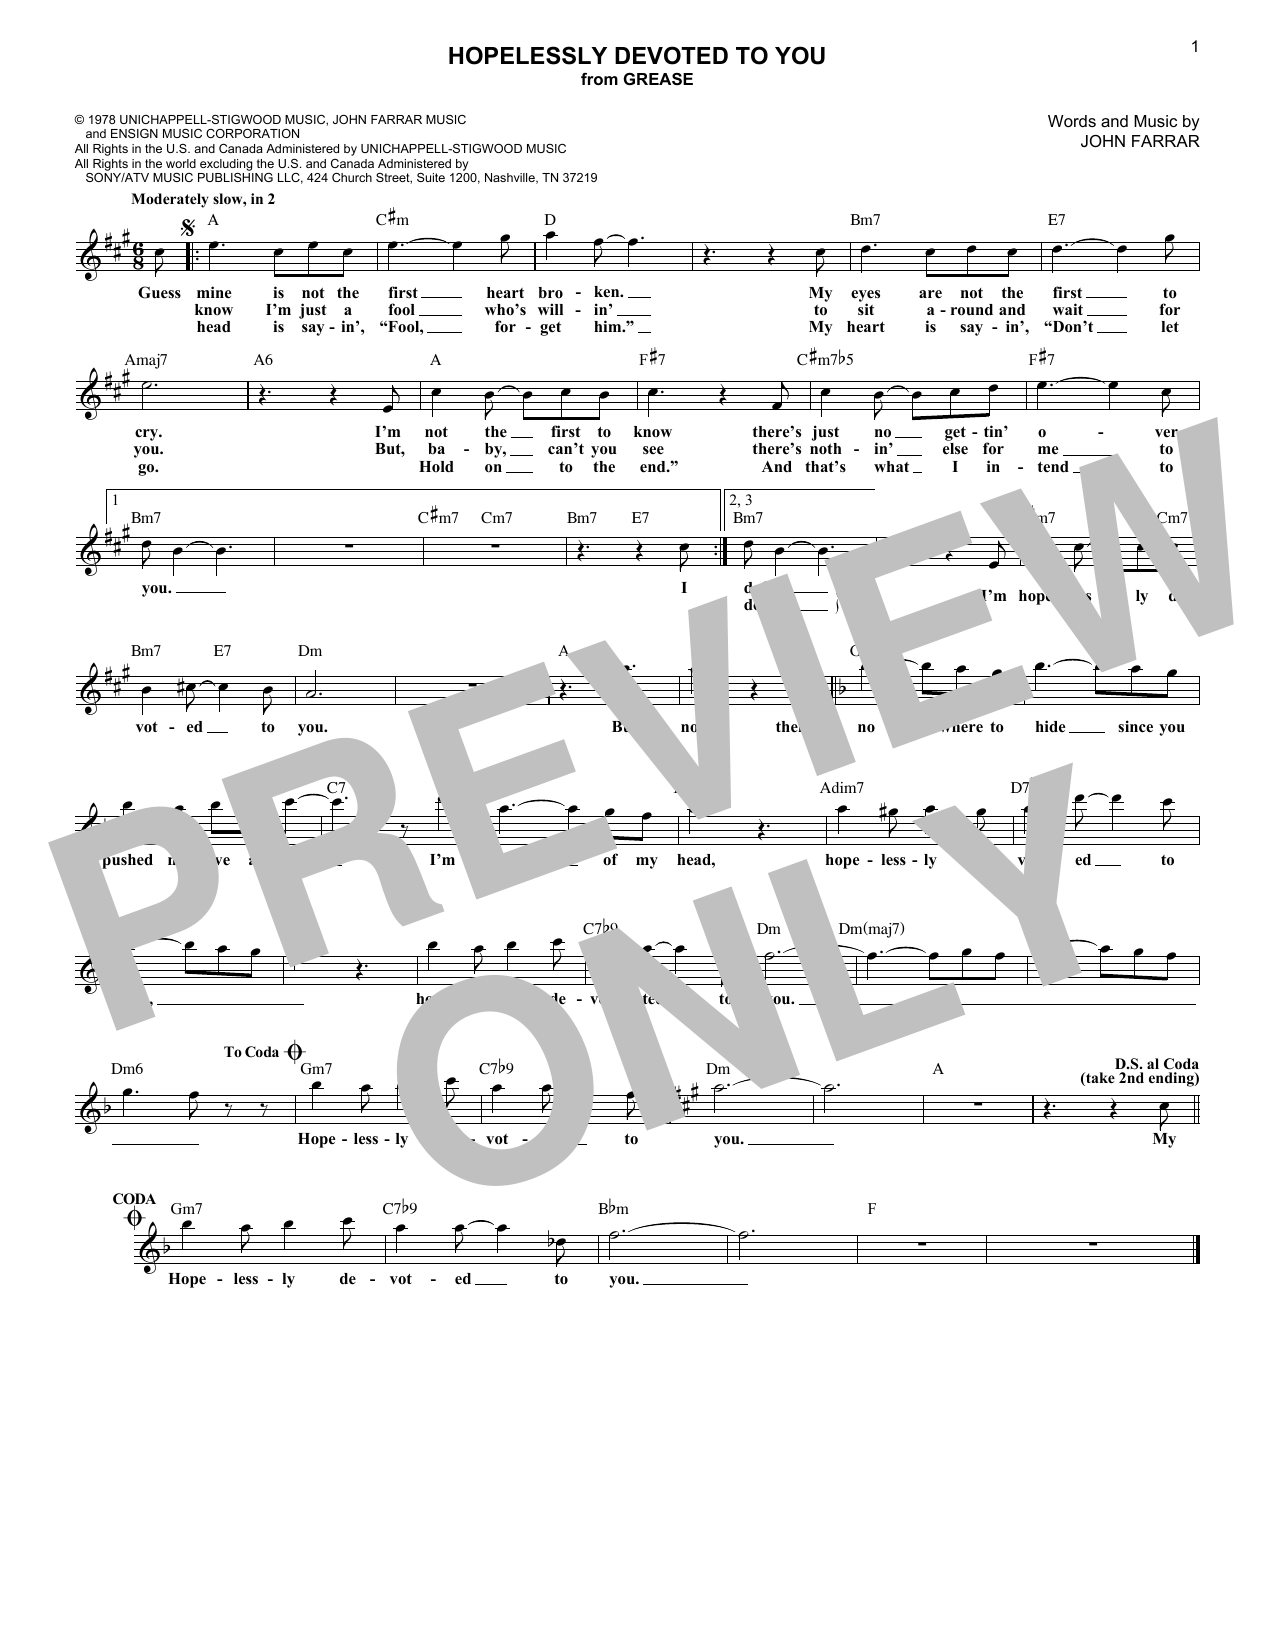 Sheet music digital files to print licensed olivia newton john hopelessly devoted to you hexwebz Image collections